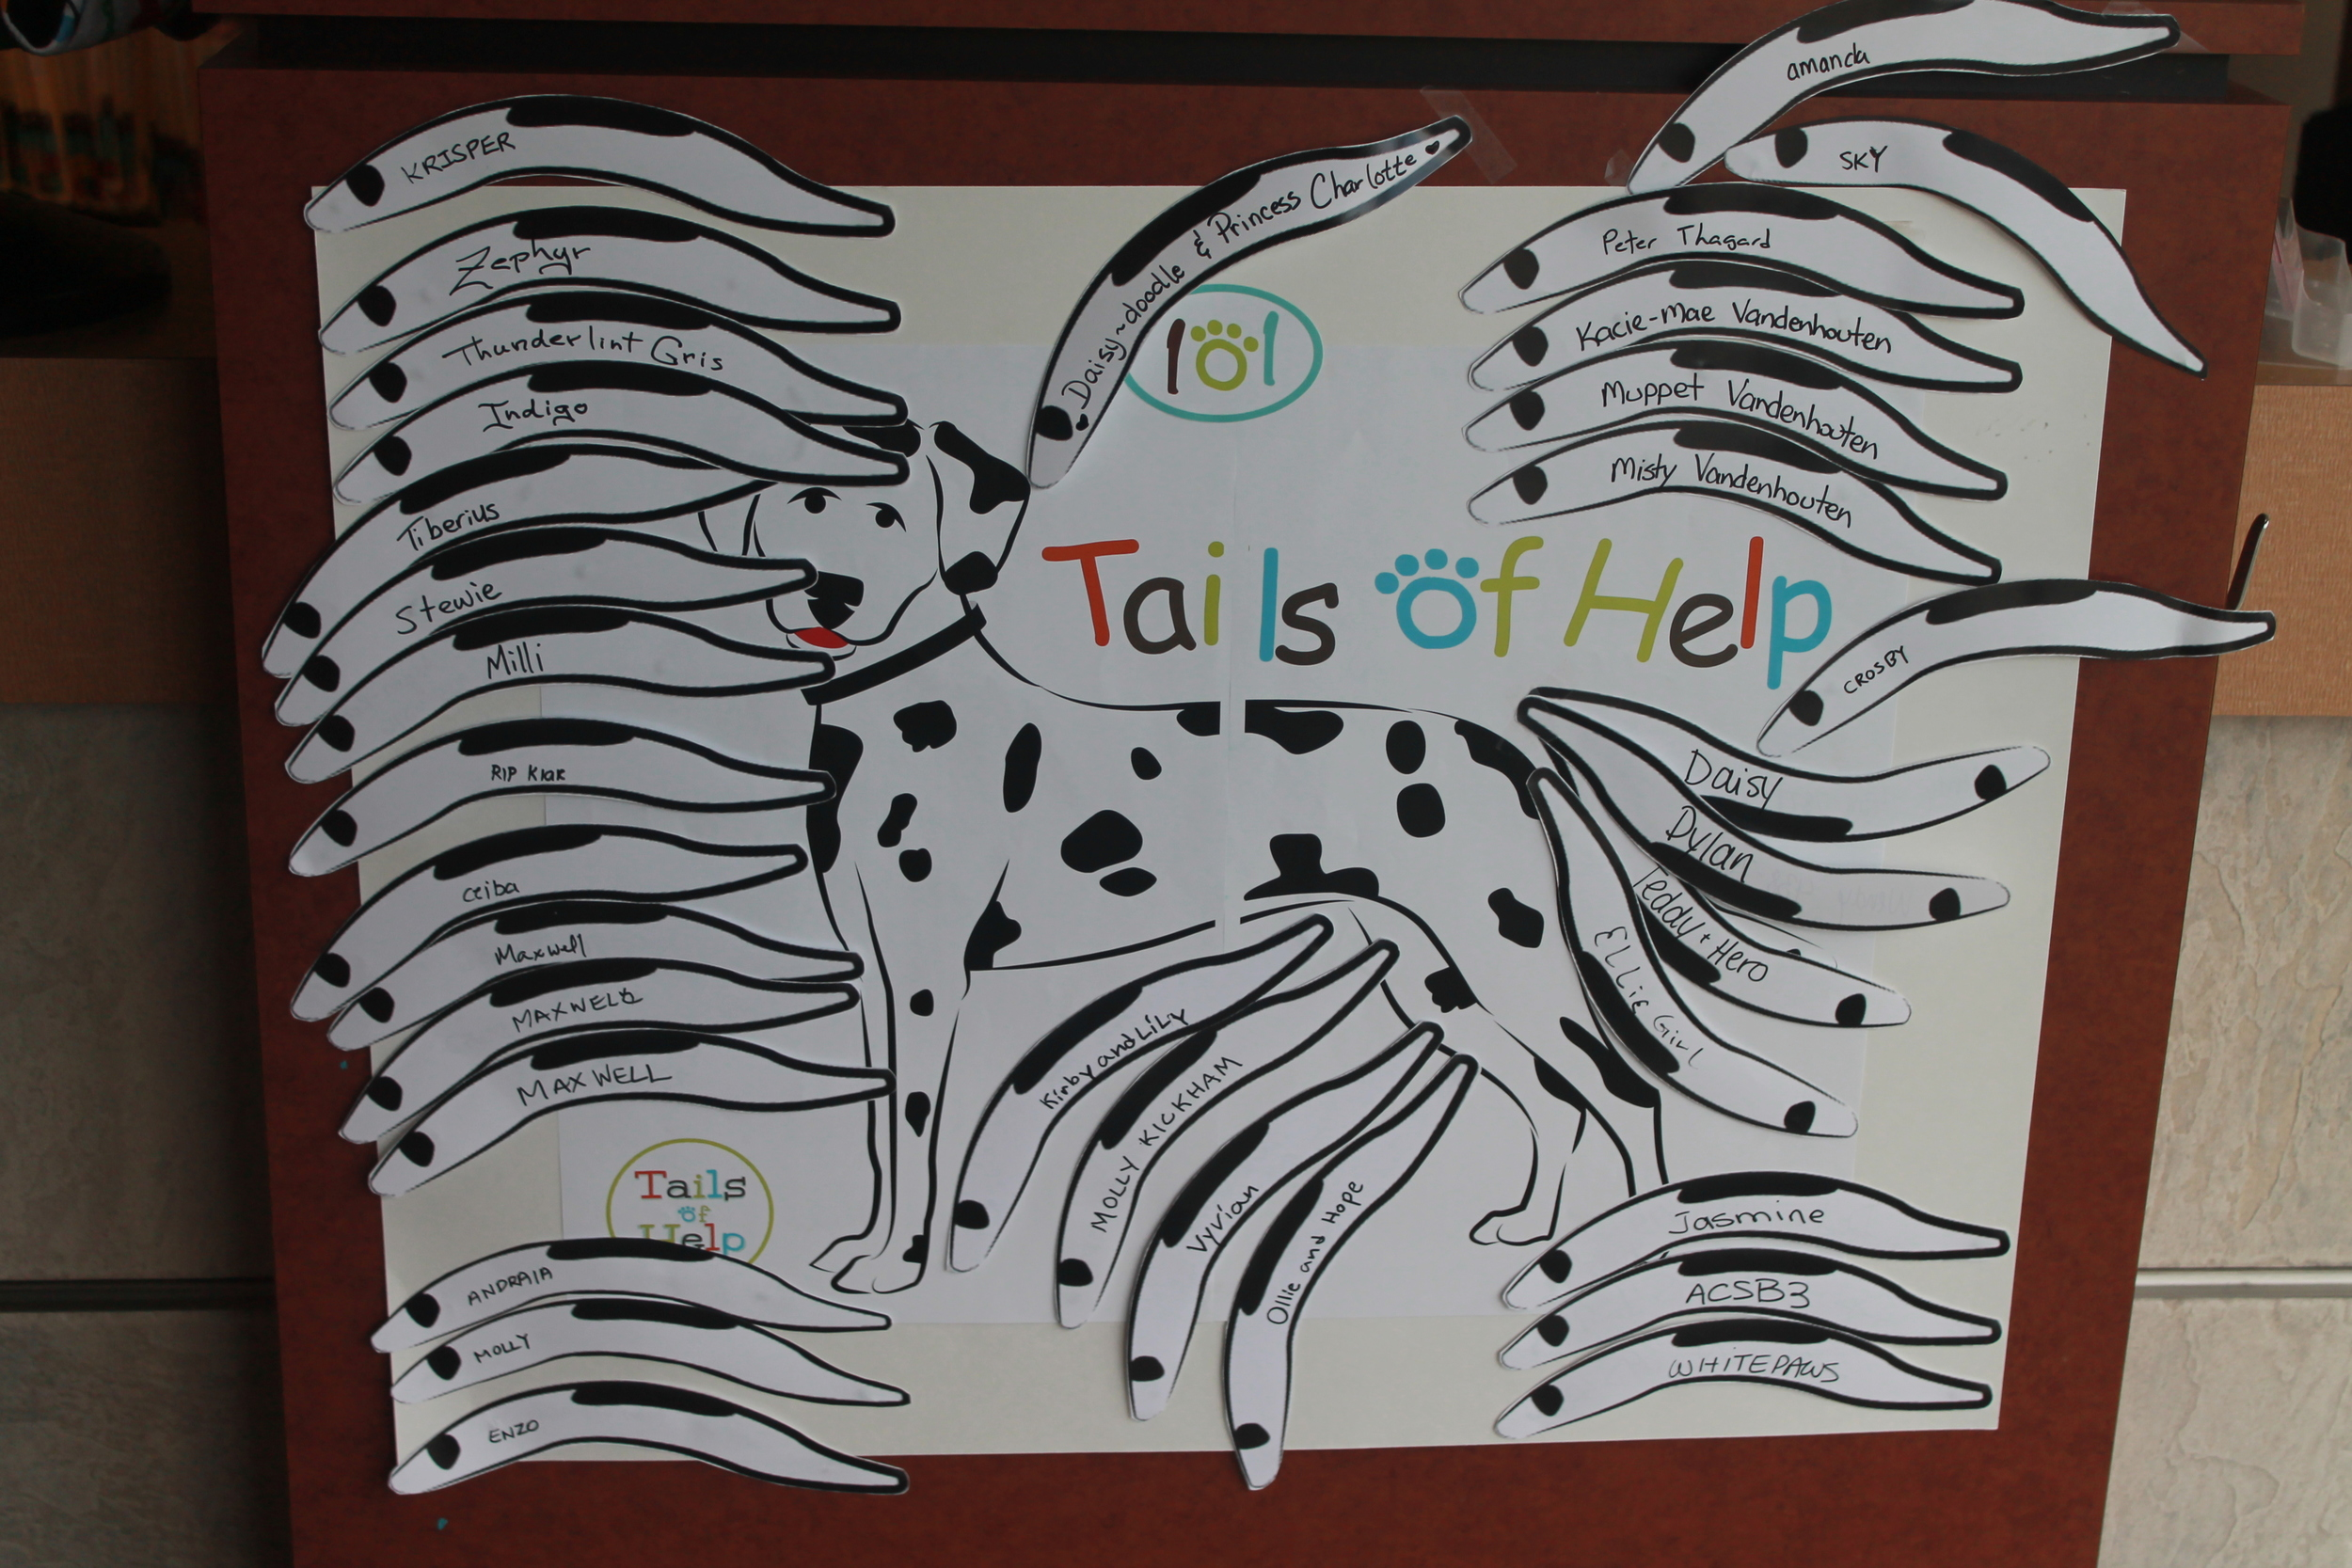 the display at terwillegar VEterinary Clinic became very crowded with 202 tails campaign donations